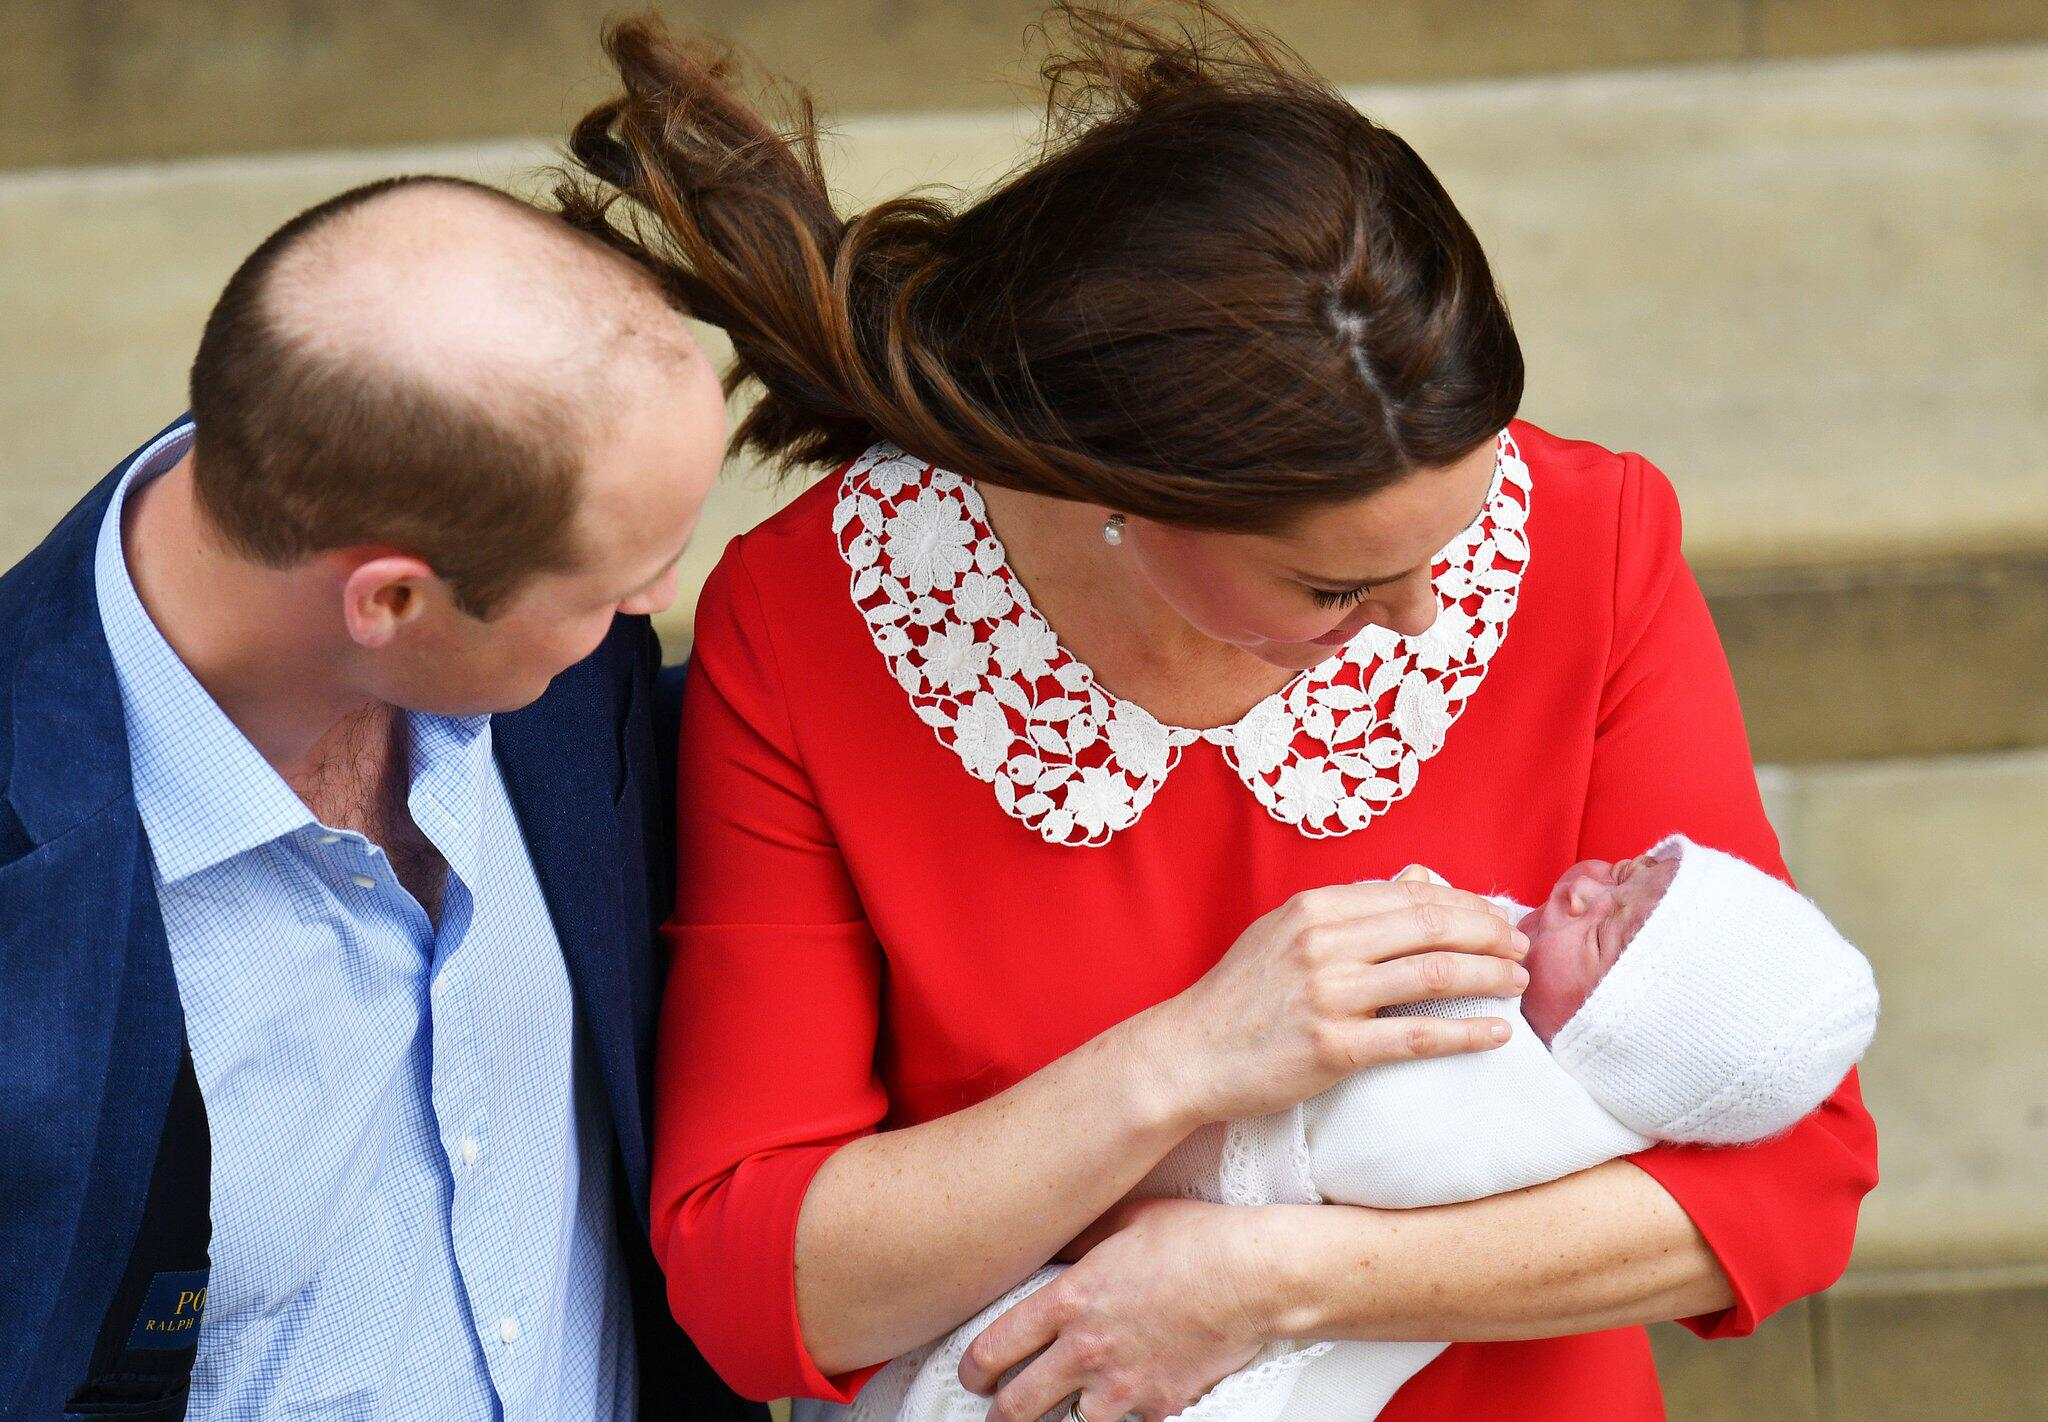 Bild zu Herzogin Kate, Prinz William, Baby, St. Mary's Hospital, London